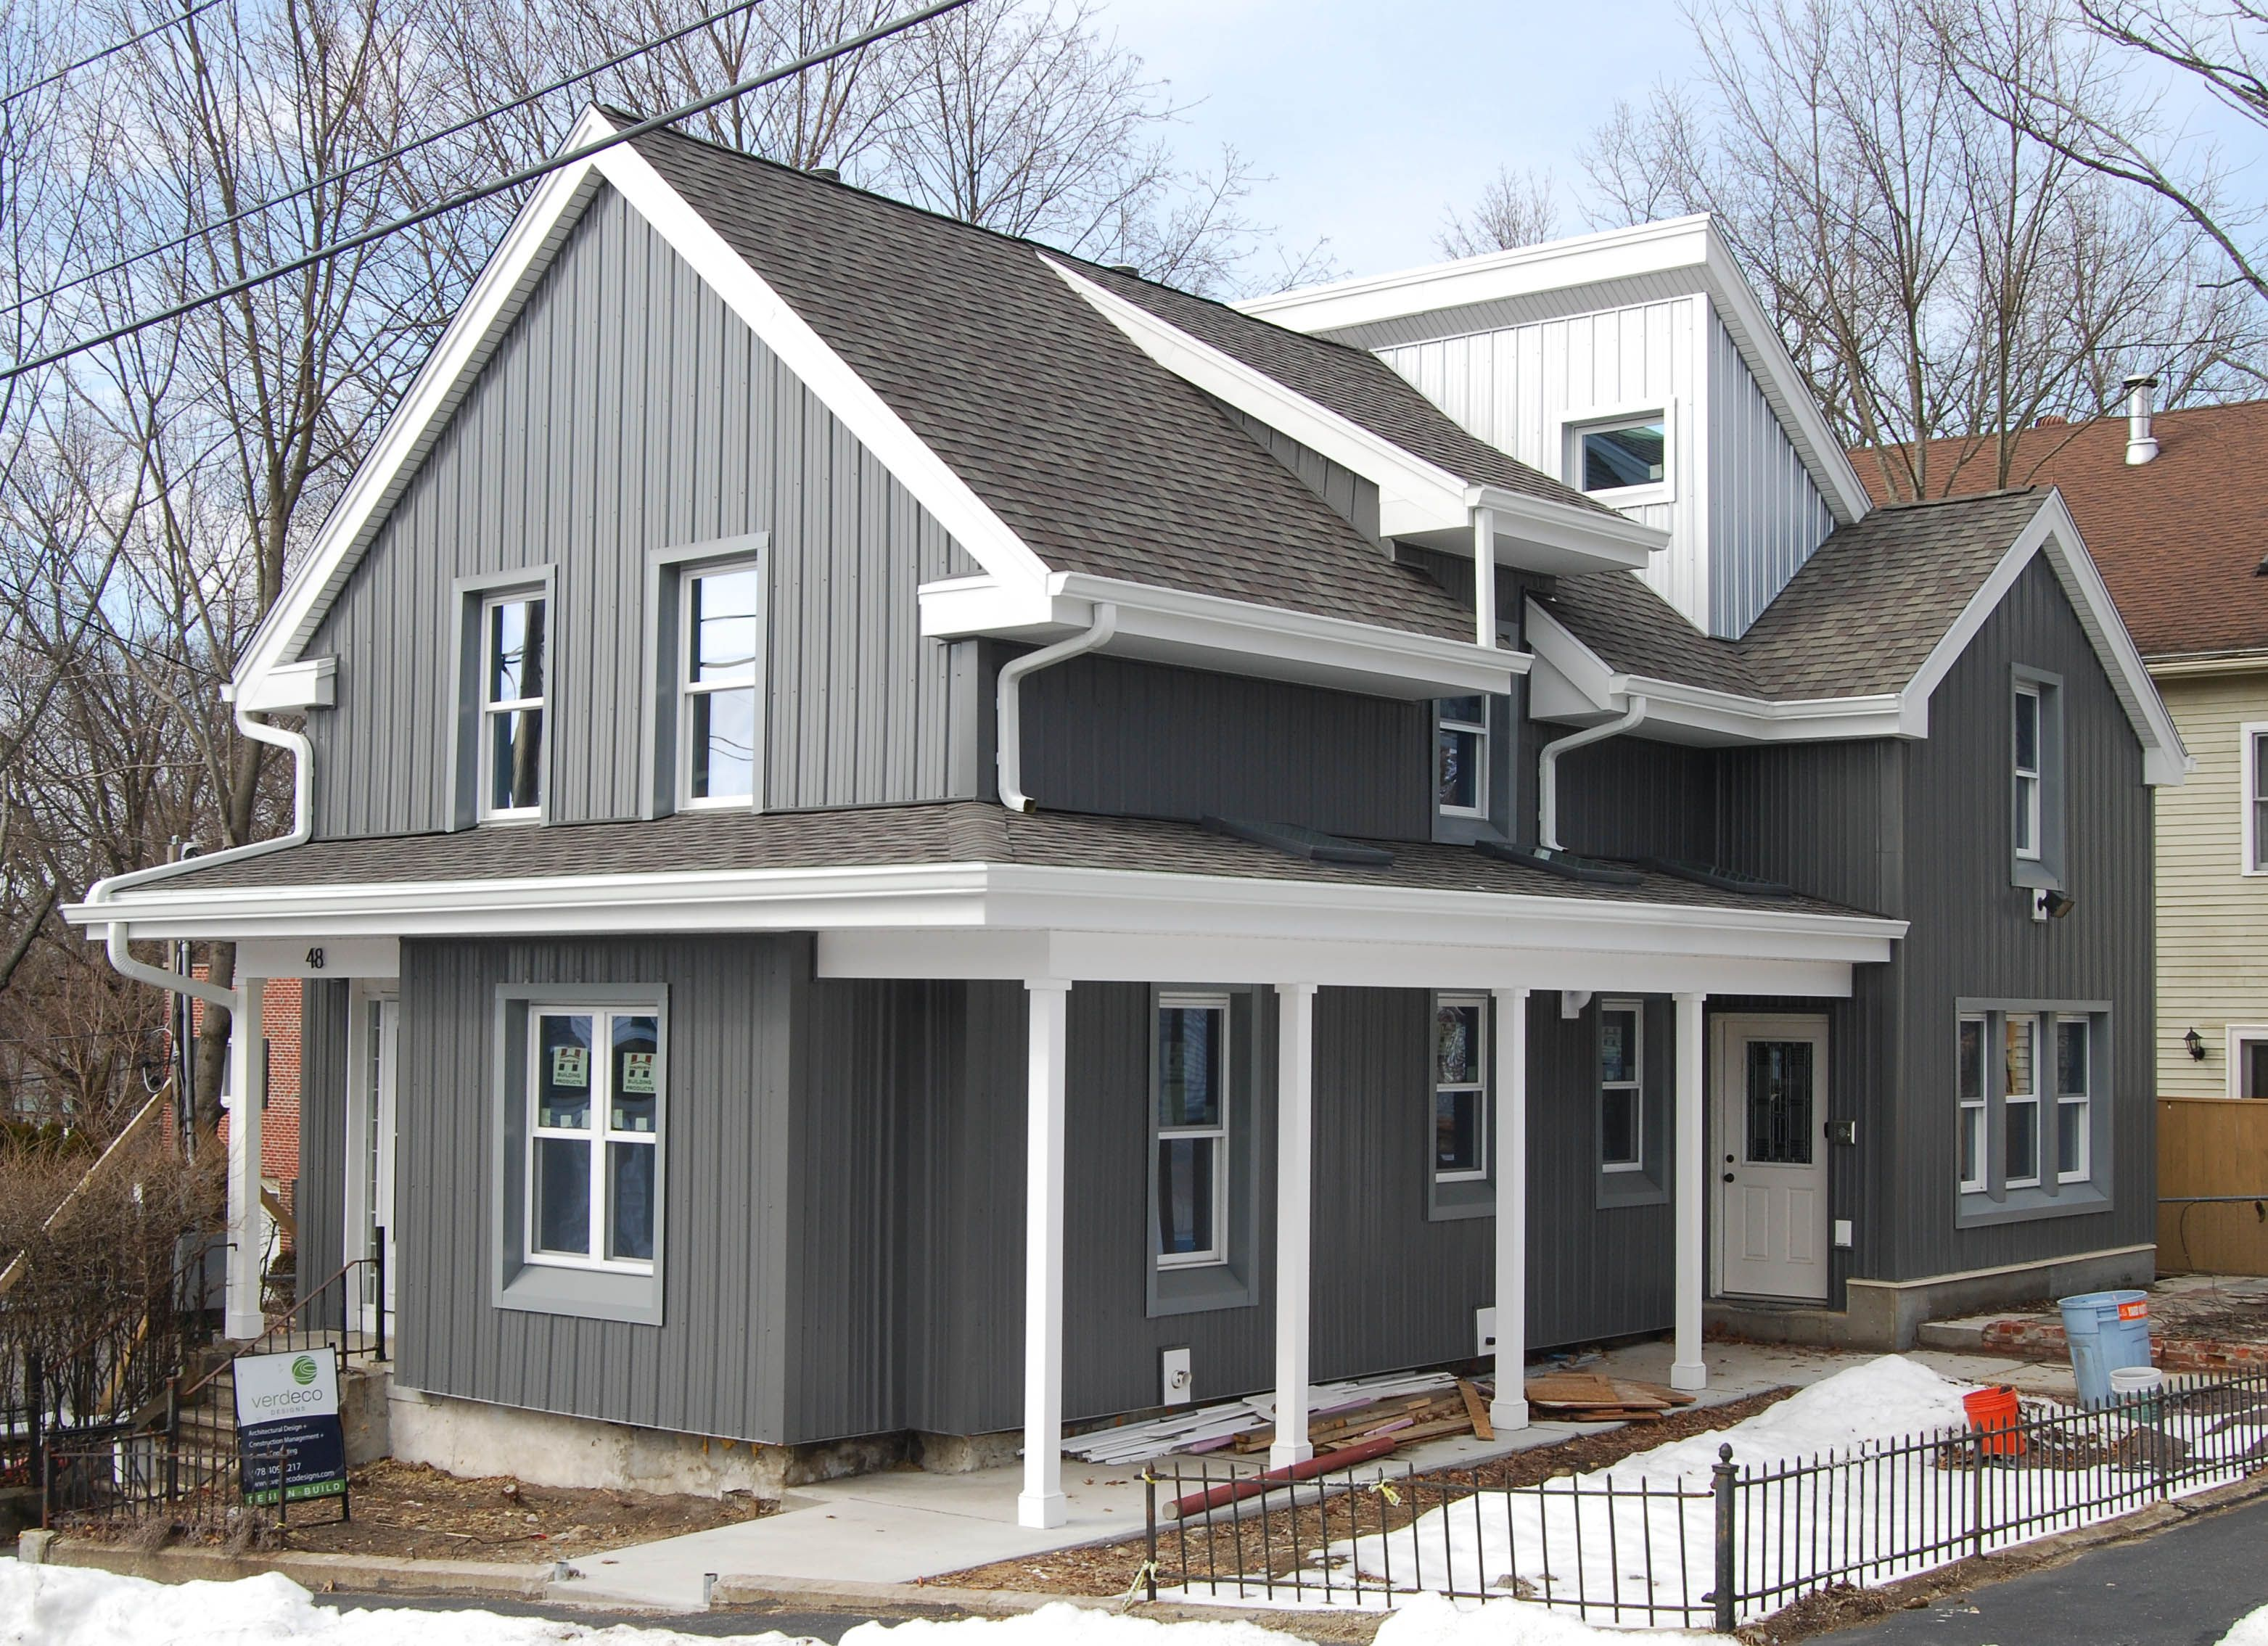 Building Exterior Sage Siding Farmhouse : The boldness of metal siding is softened by muted